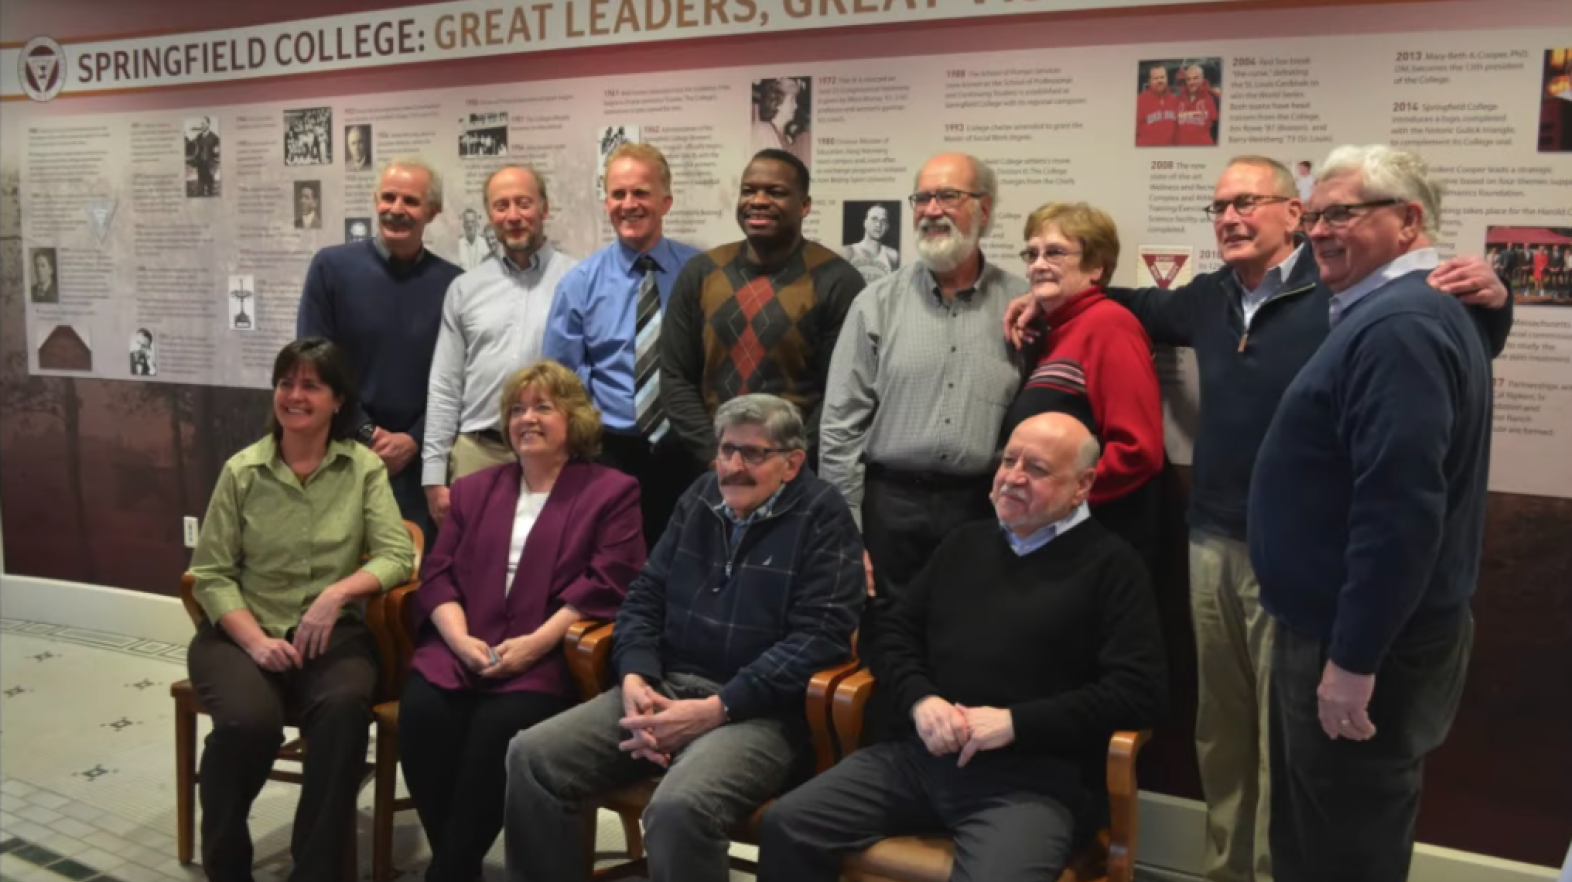 Professors of Humanics at Springfield College